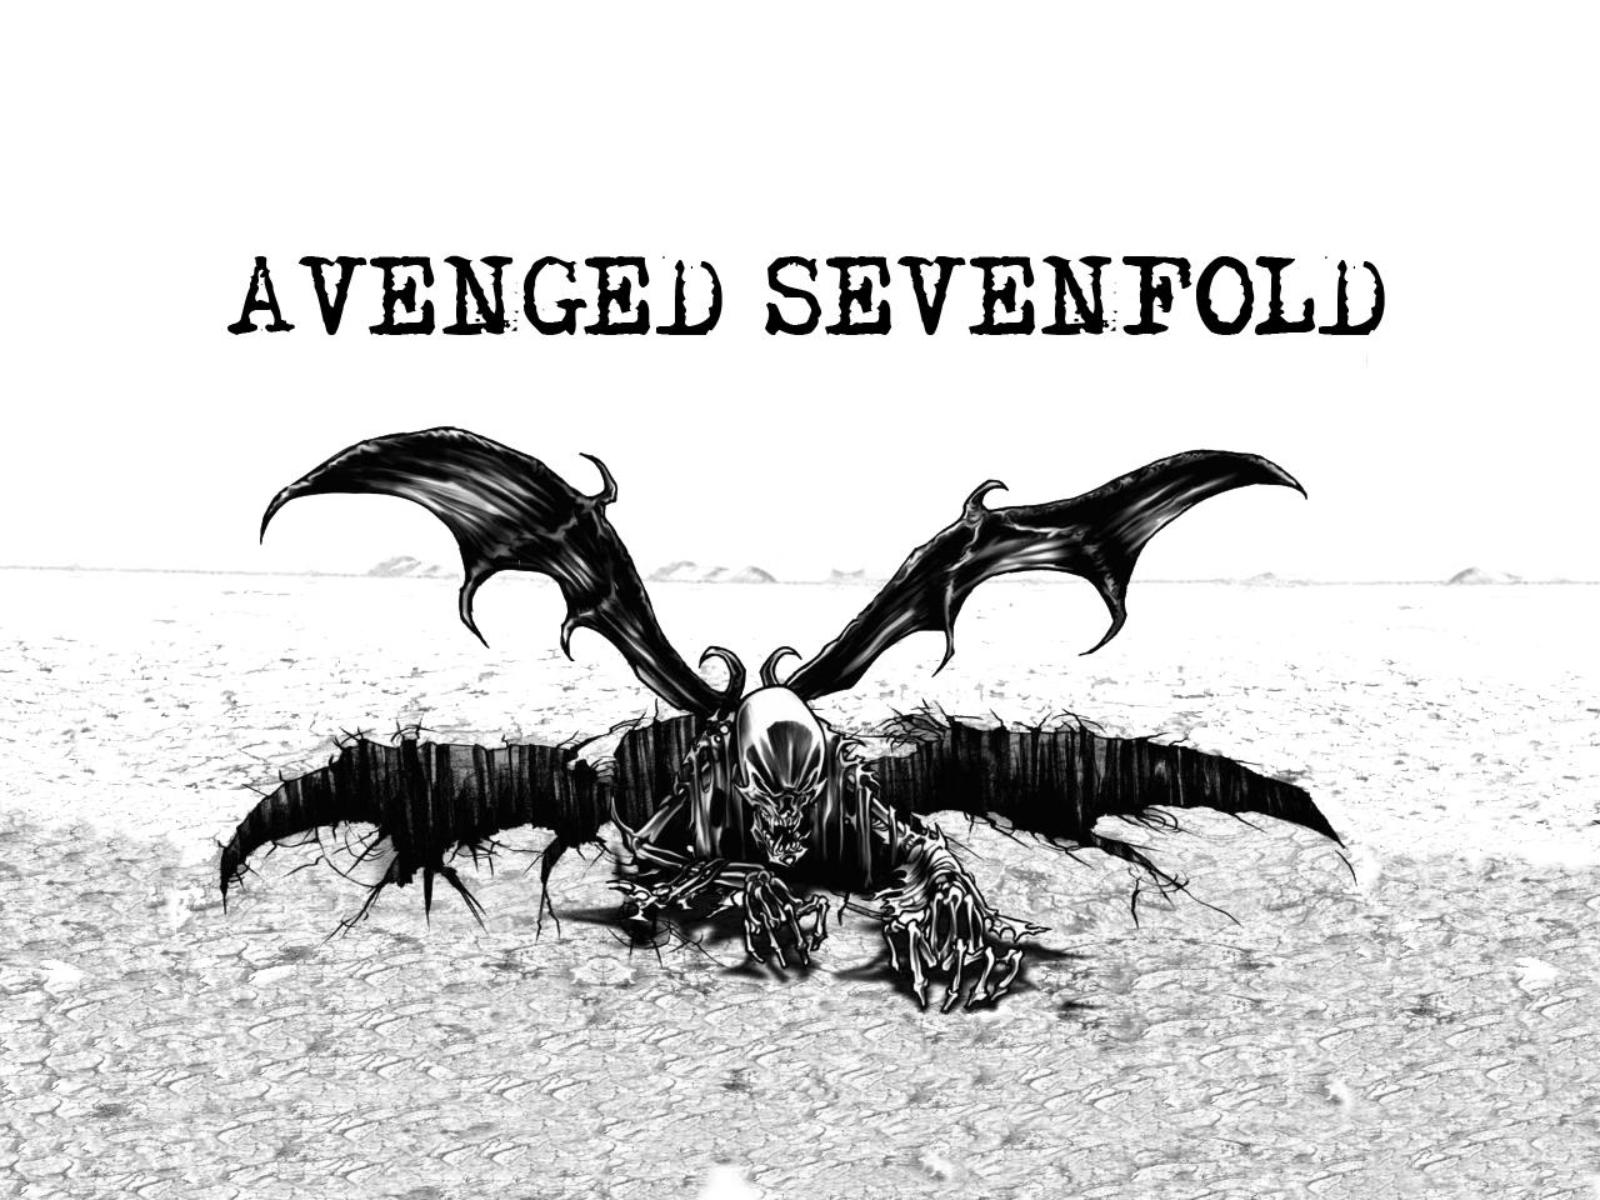 Avenged Sevenfold Afterlife Wallpaper A7x images 01 jpg